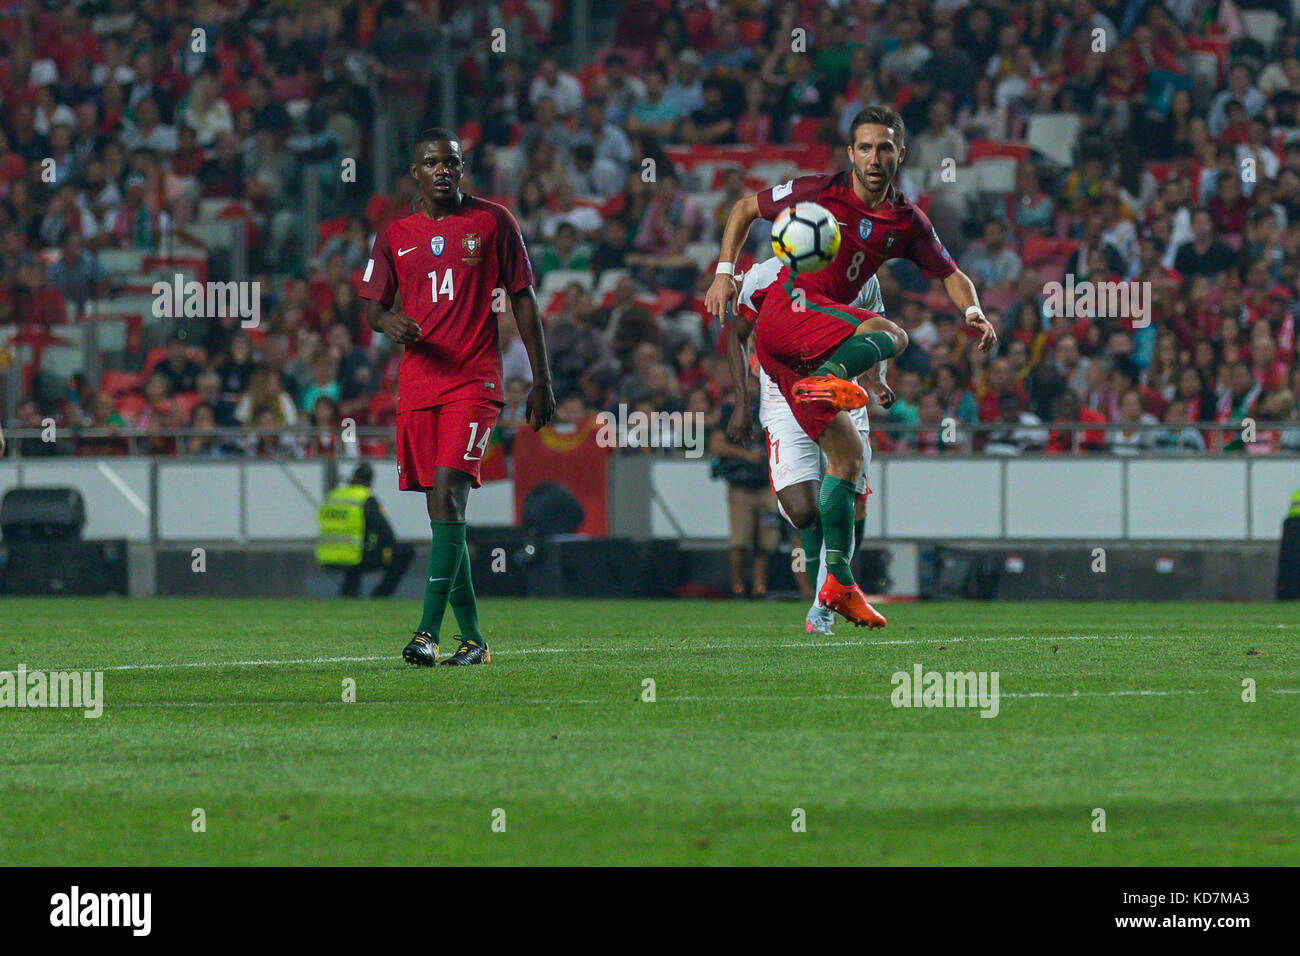 61b7a3f5255 Moutinho Stock Photos & Moutinho Stock Images - Alamy